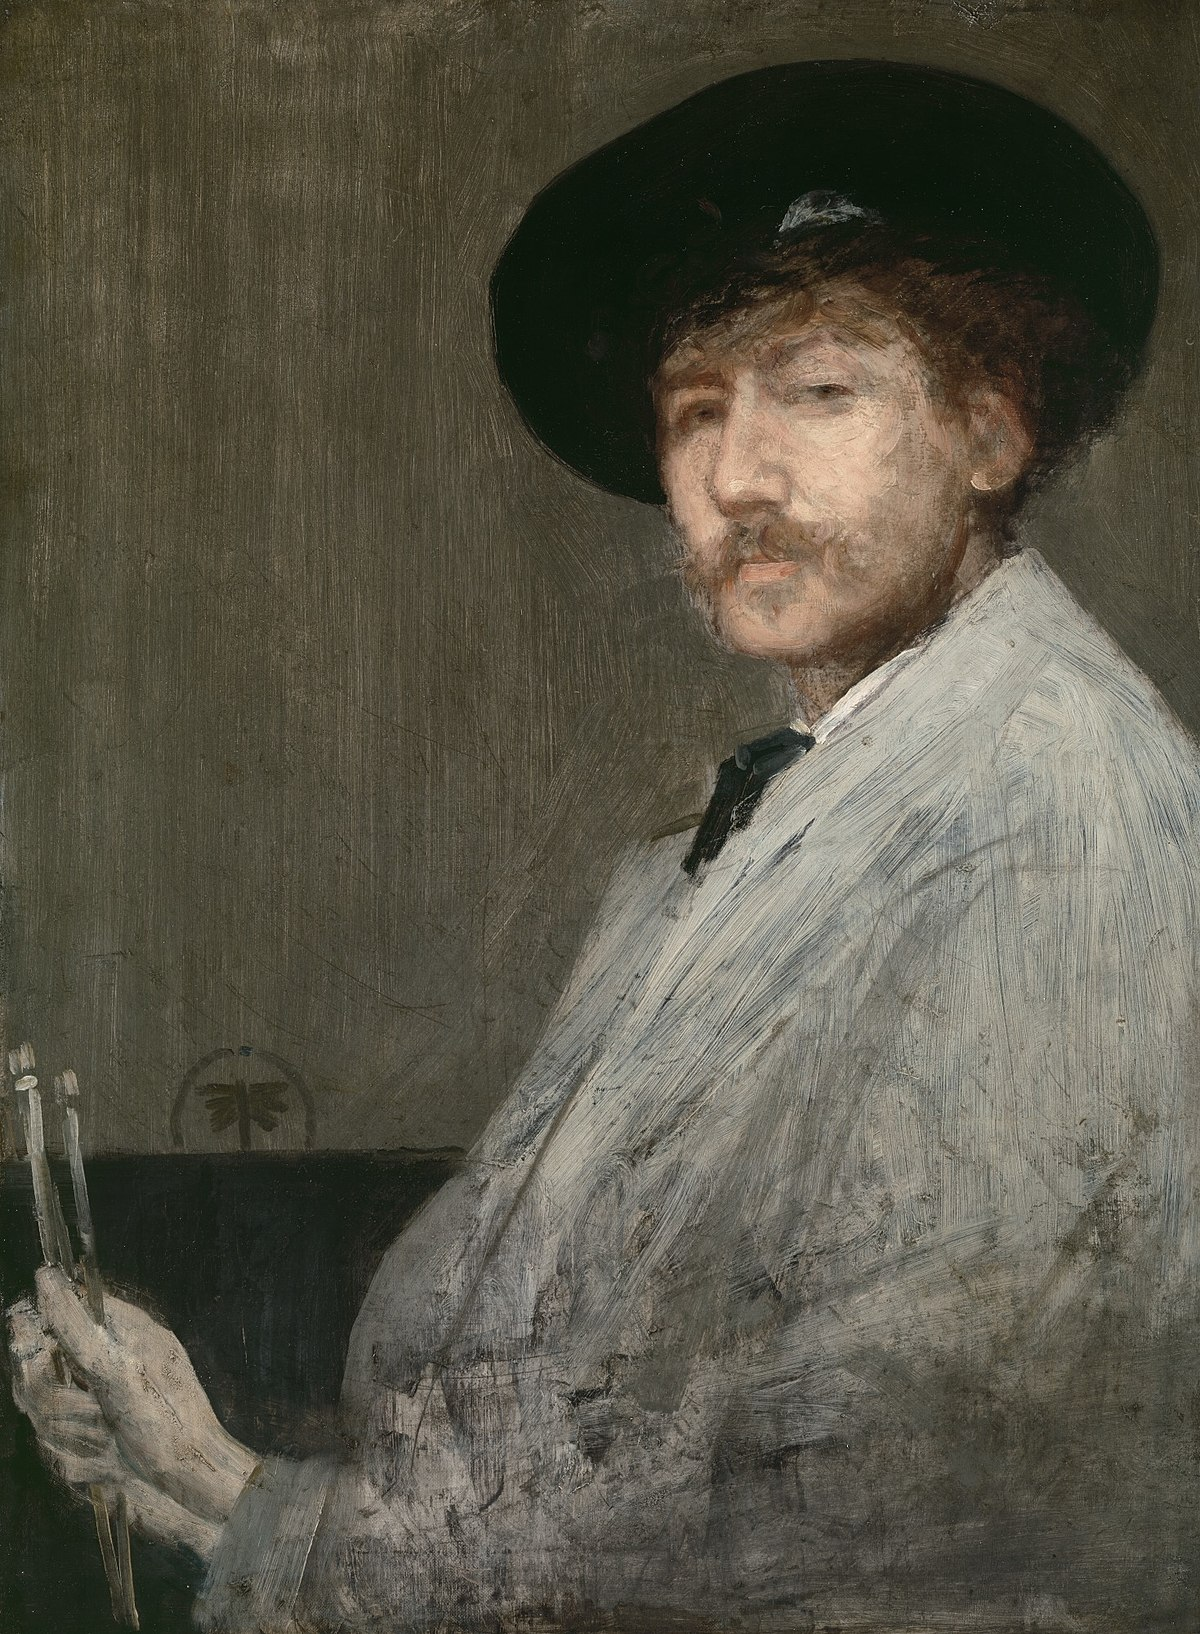 James Abbott McNeill Whistler - Wikipedia